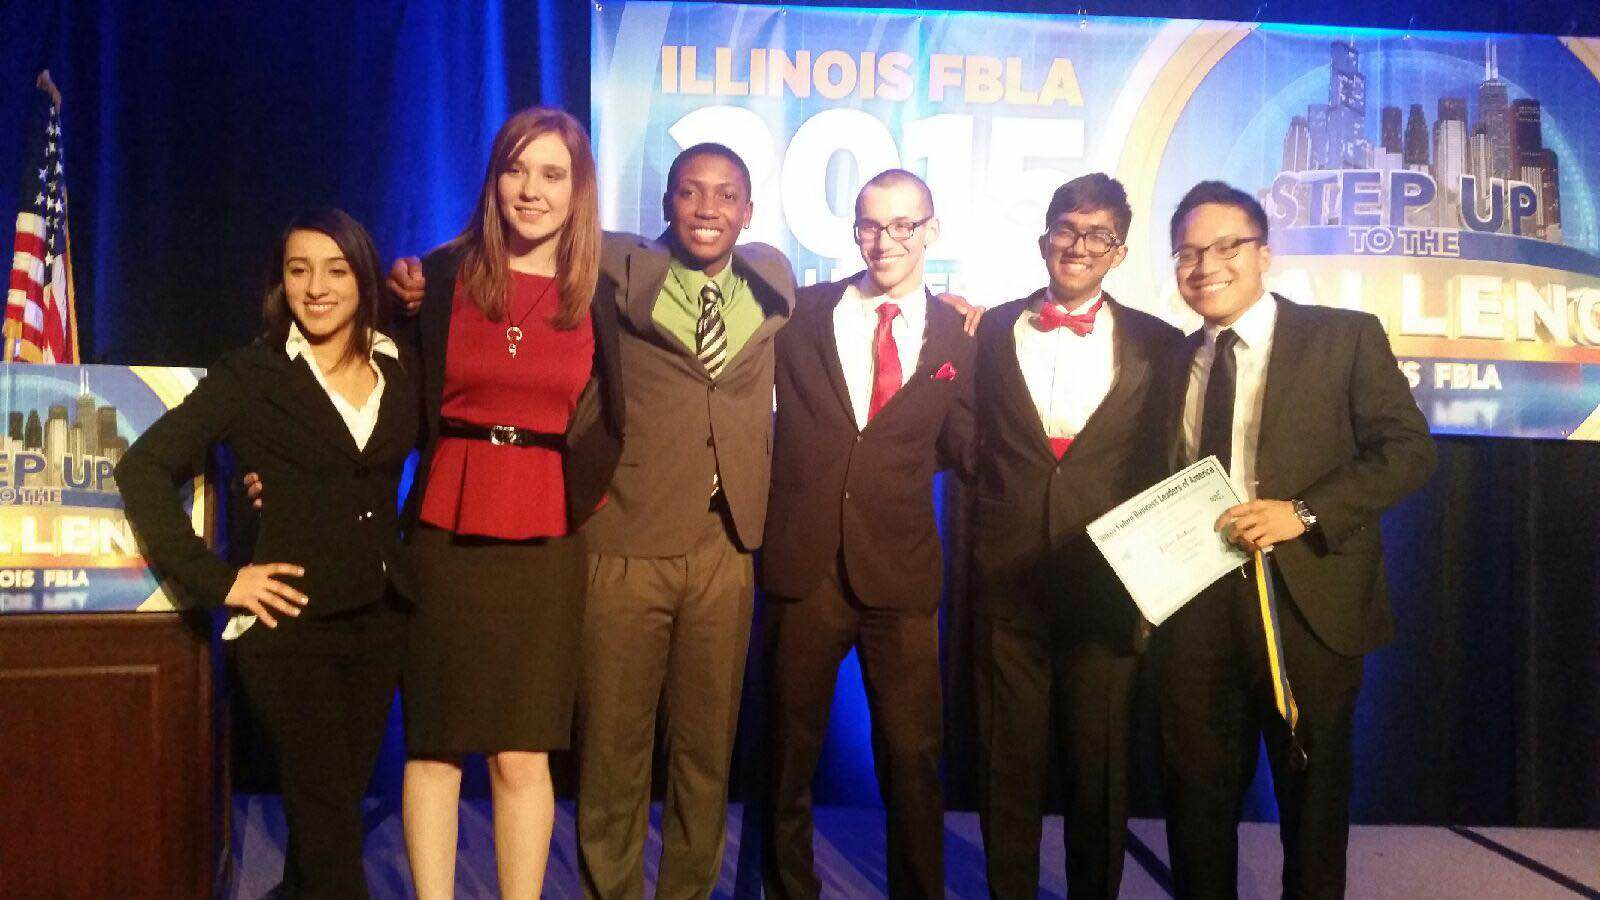 All of Huntley's state competition competitors pose together on the state stage (Courtesy of Jestoni Losbanes).